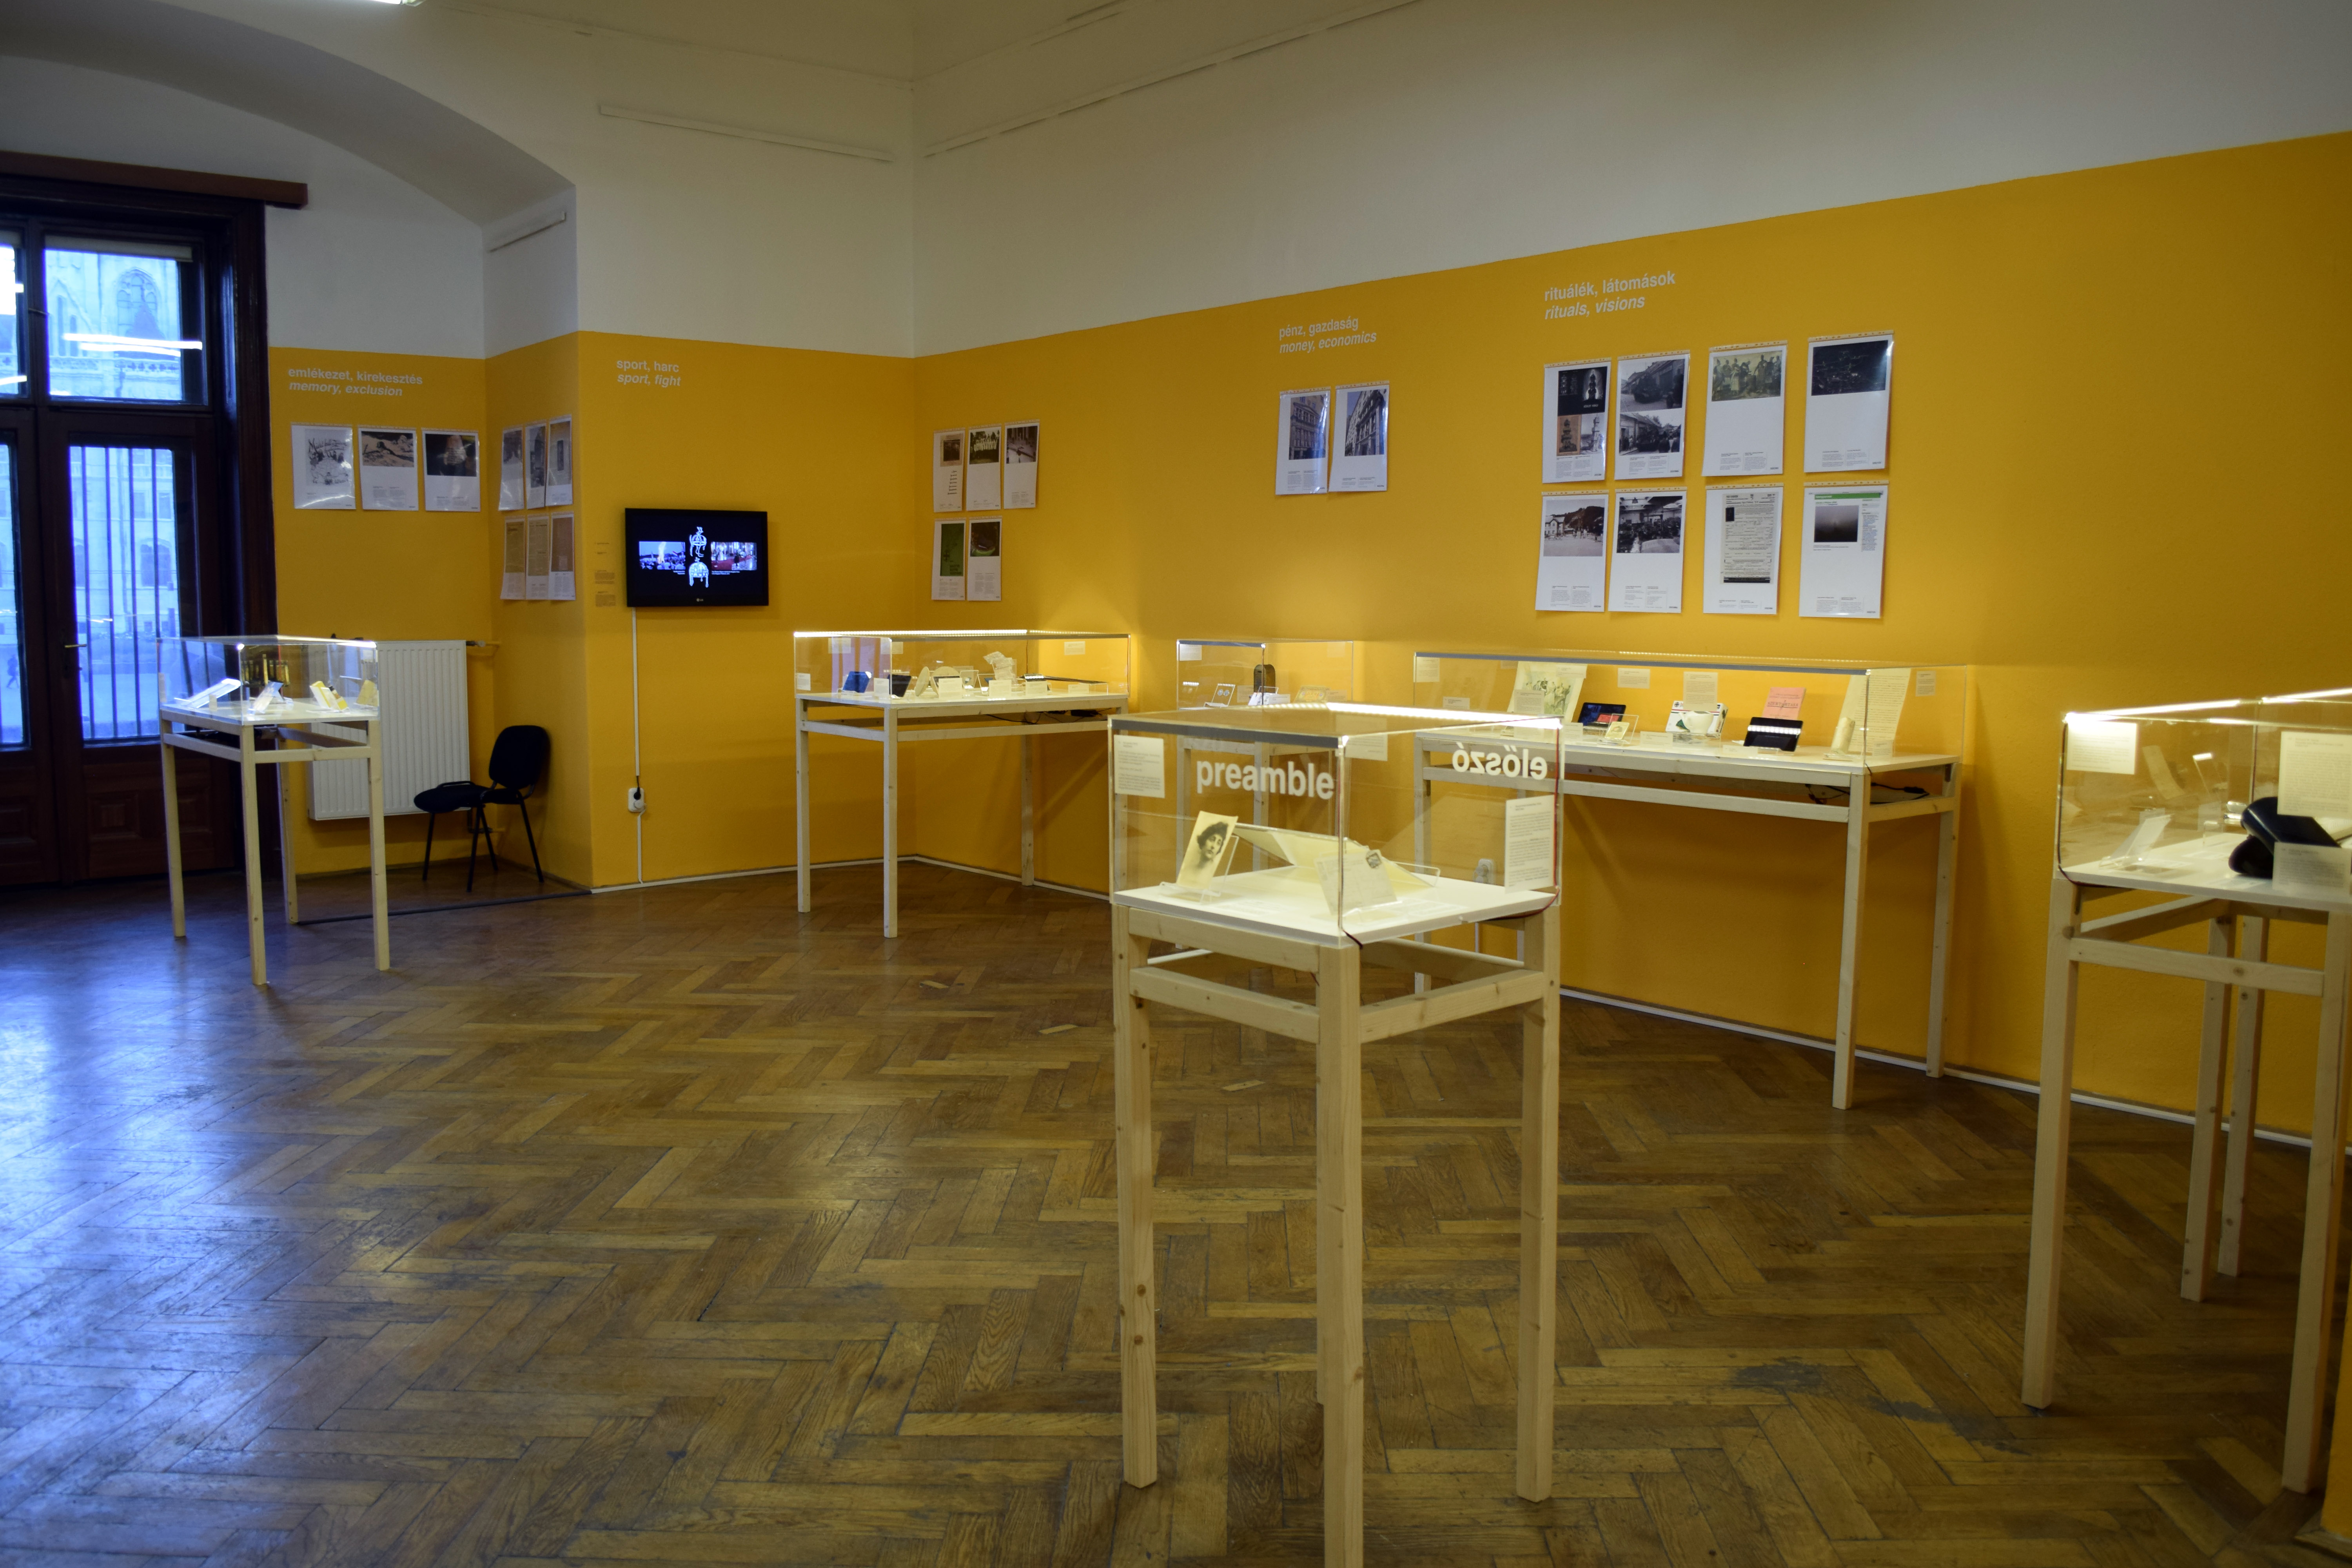 Szabolcs KissPál From Fake Mountains to Faith (Hungarian Trilogy) Installation view at the Institute of Political History, Budapest Photo: Szabolcs KissPál